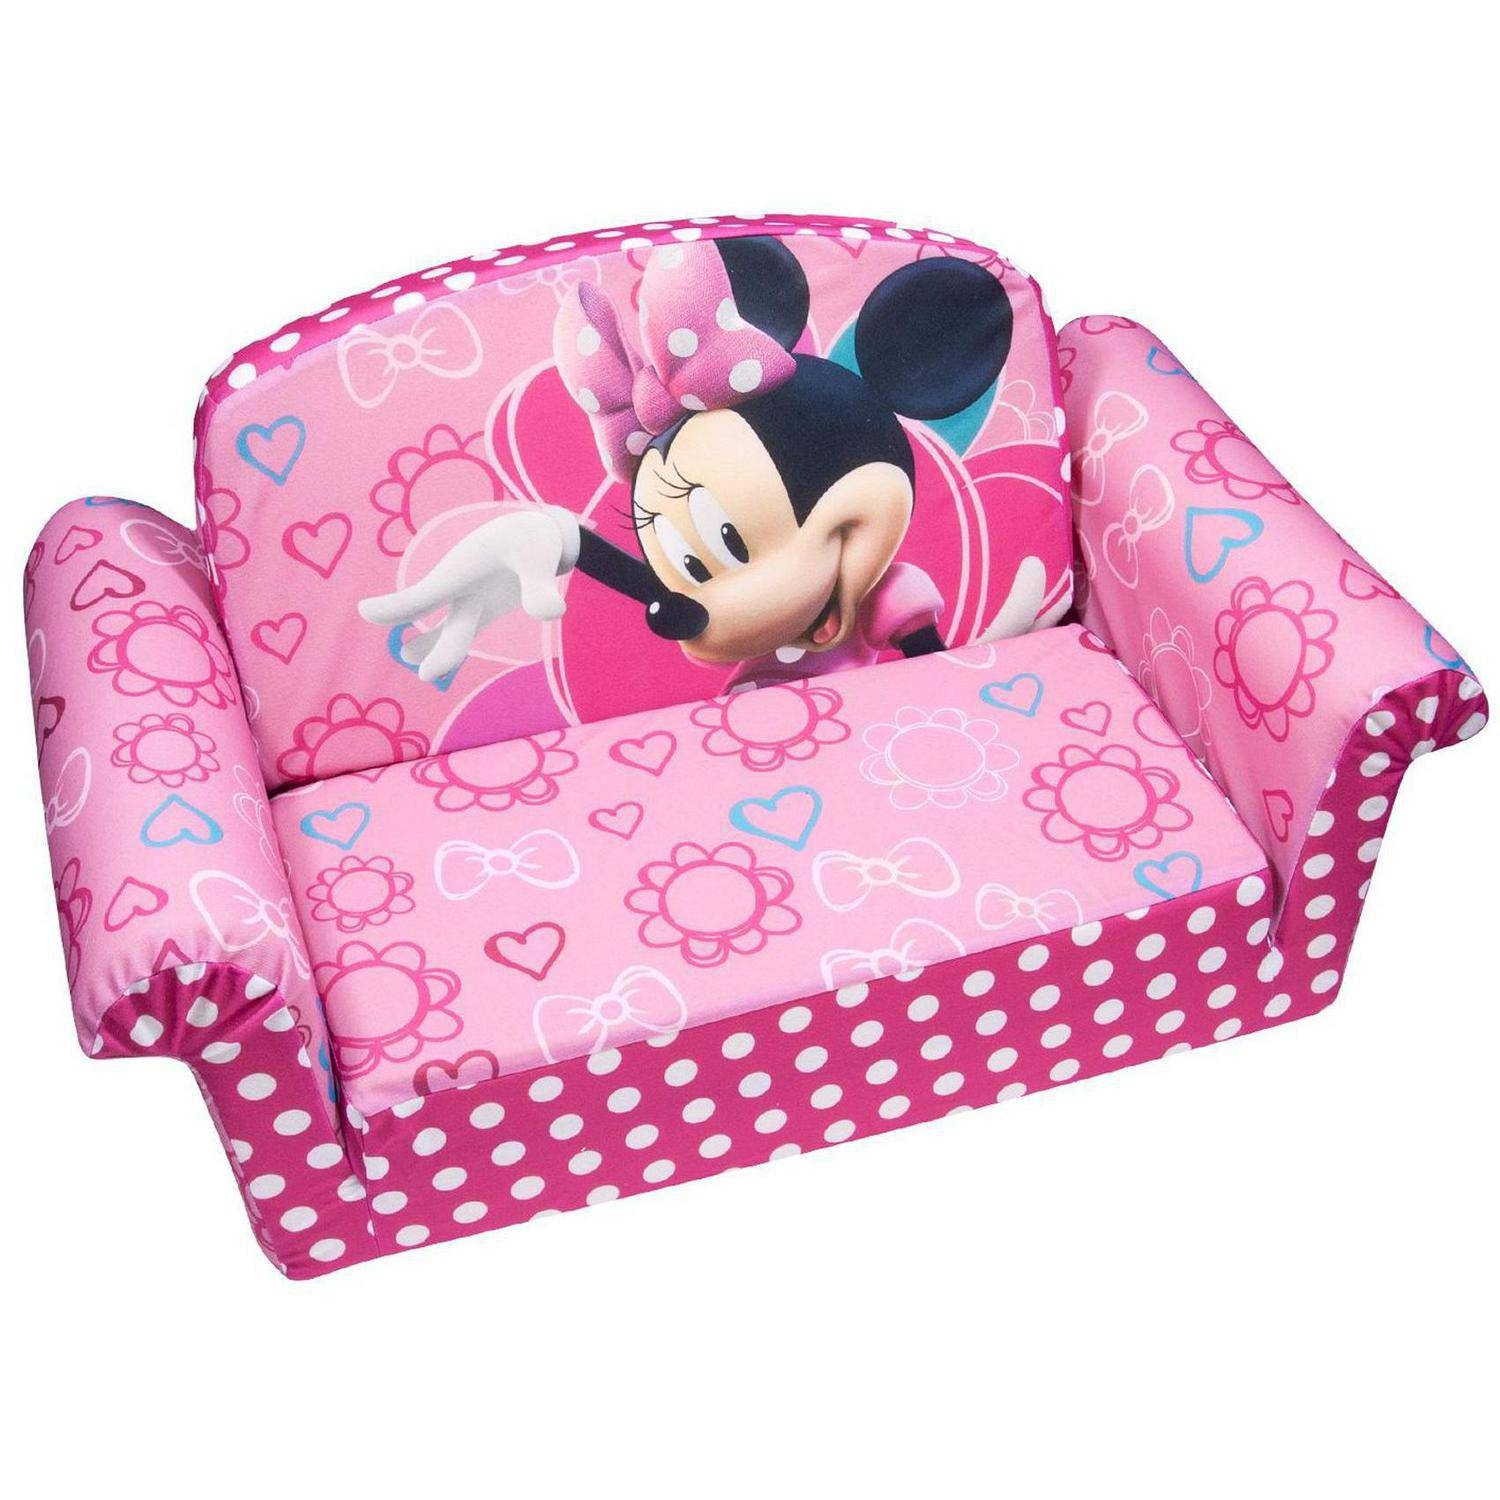 Sofa Chair For Toddlers Home Chair Designs With Disney Sofa Chairs (View 7 of 15)